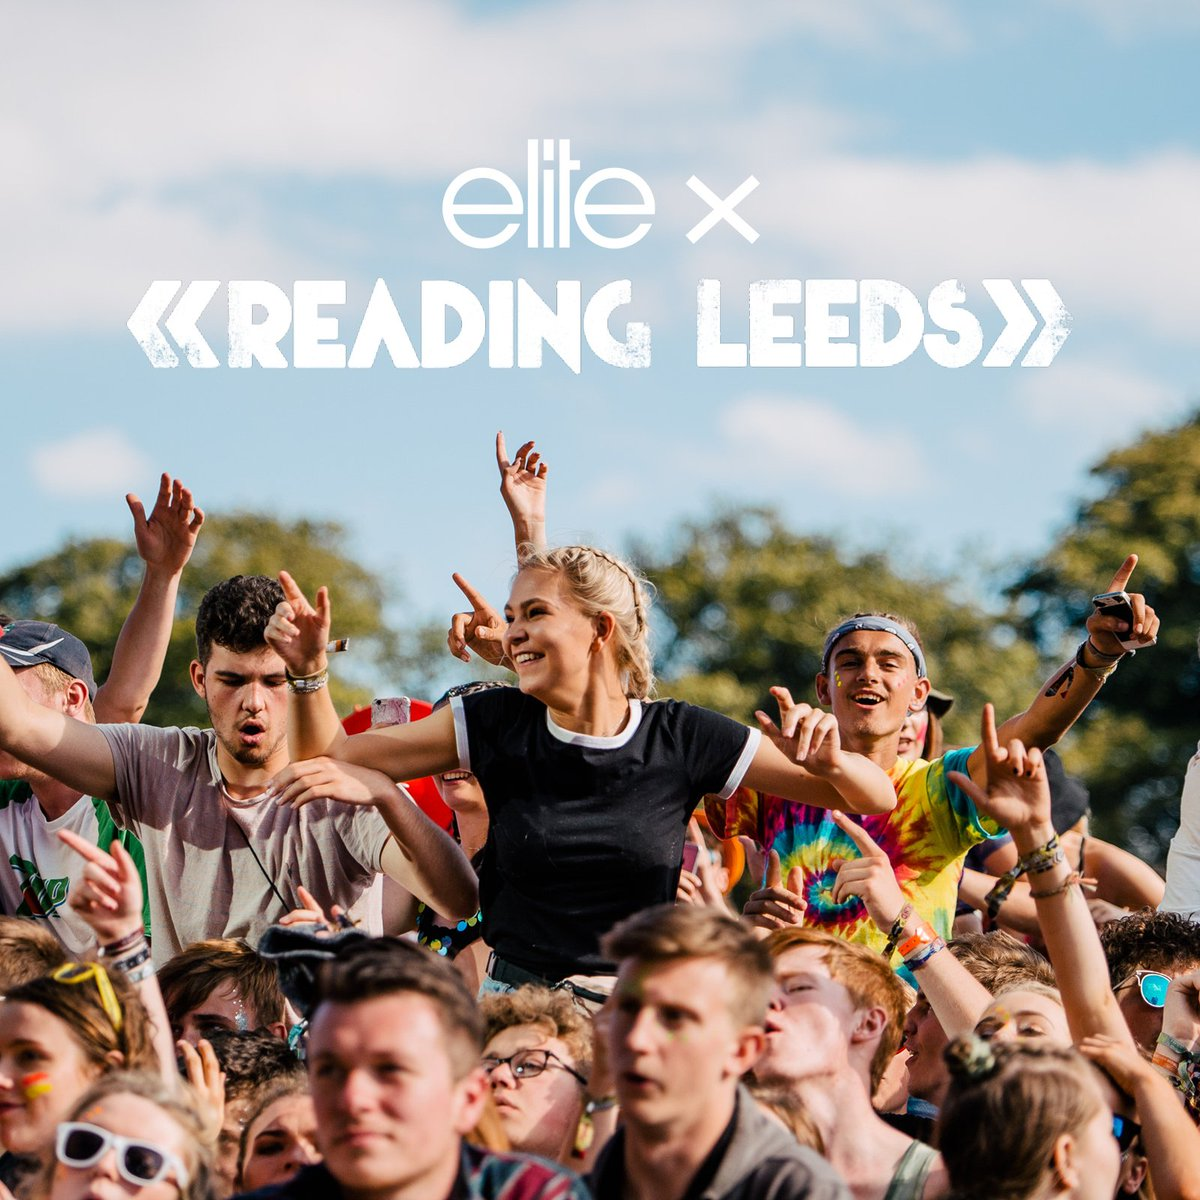 .@Elite_London will be at #RandL18 scouting for talent! 👏☀️ readingfestival.com/news/elite-lon…